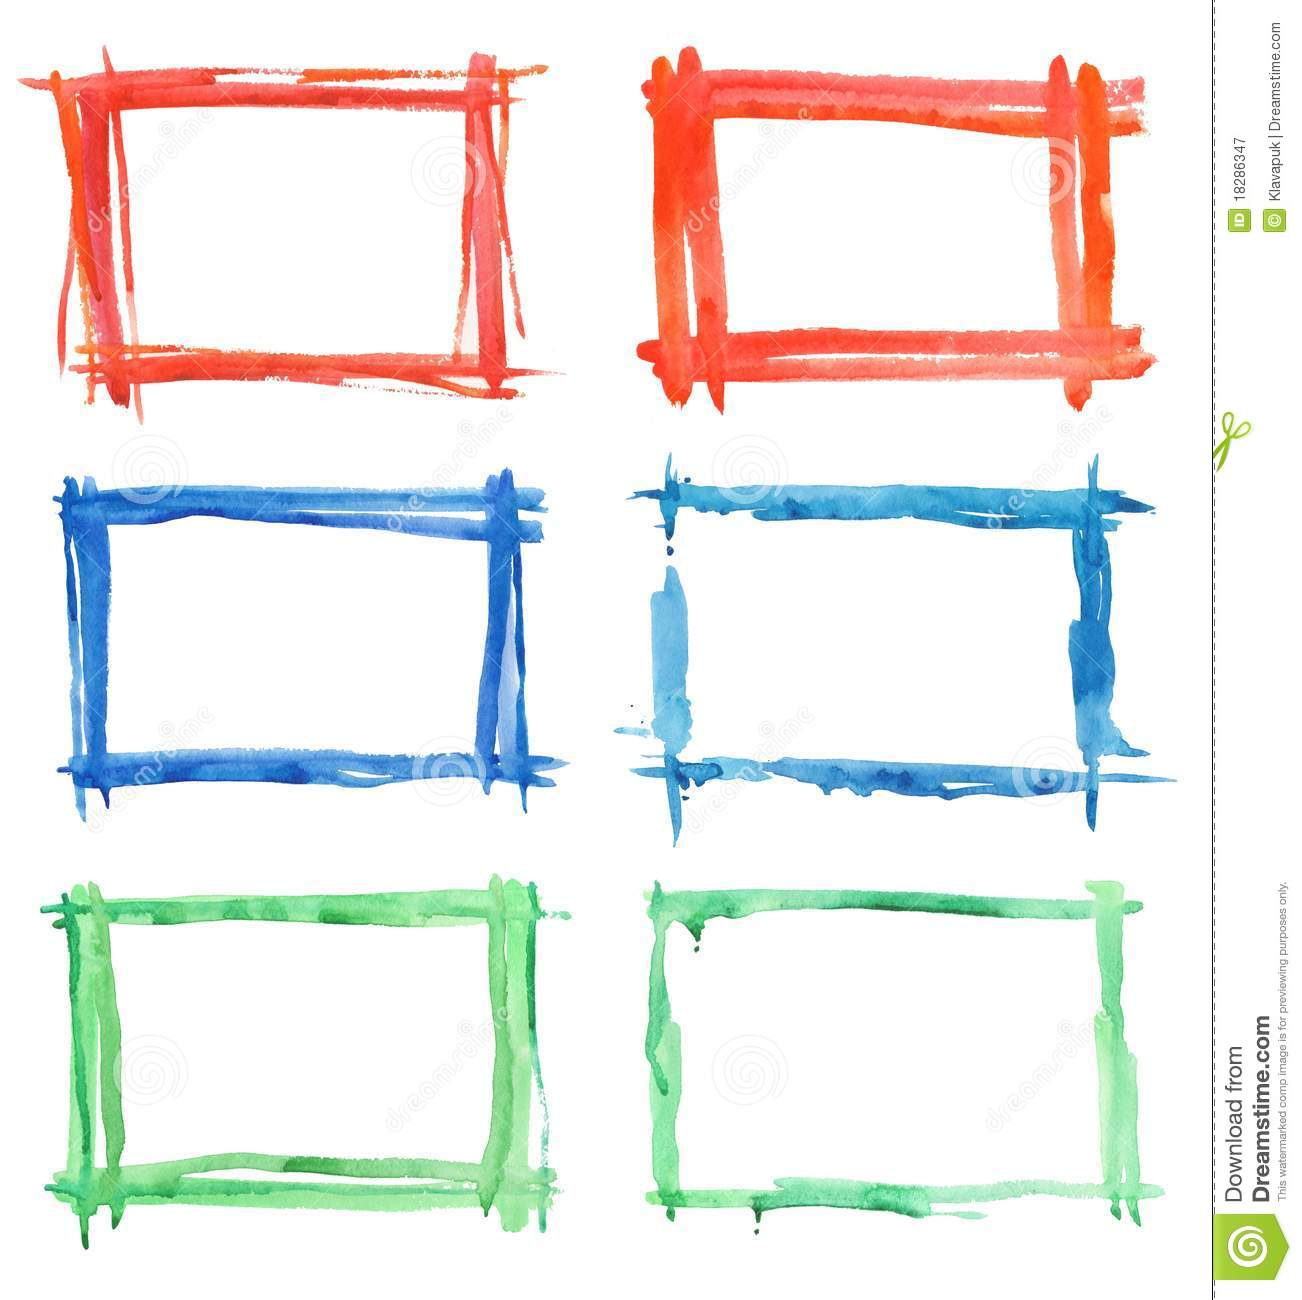 Paint frames stock illustration. Illustration of illustration - 18286347